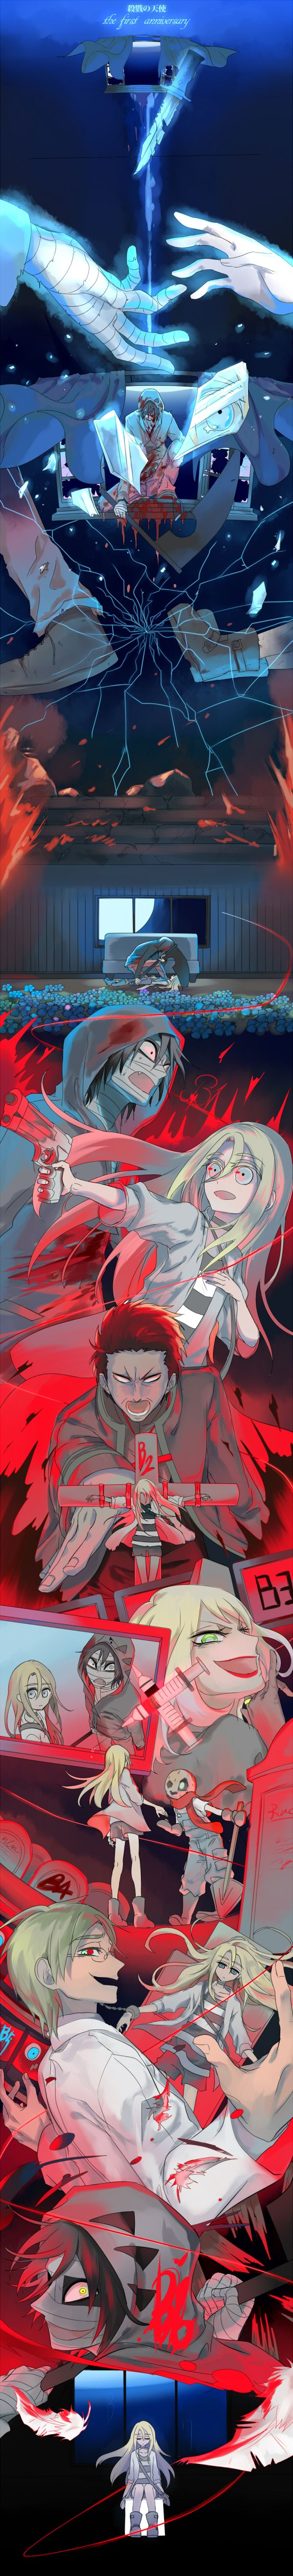 Angel of Slaughter 殺戮の天使 (Massacre Angel) (Satsuriku no Tenshi) 君が笑うまで #Anime #Manga #Game Fanart